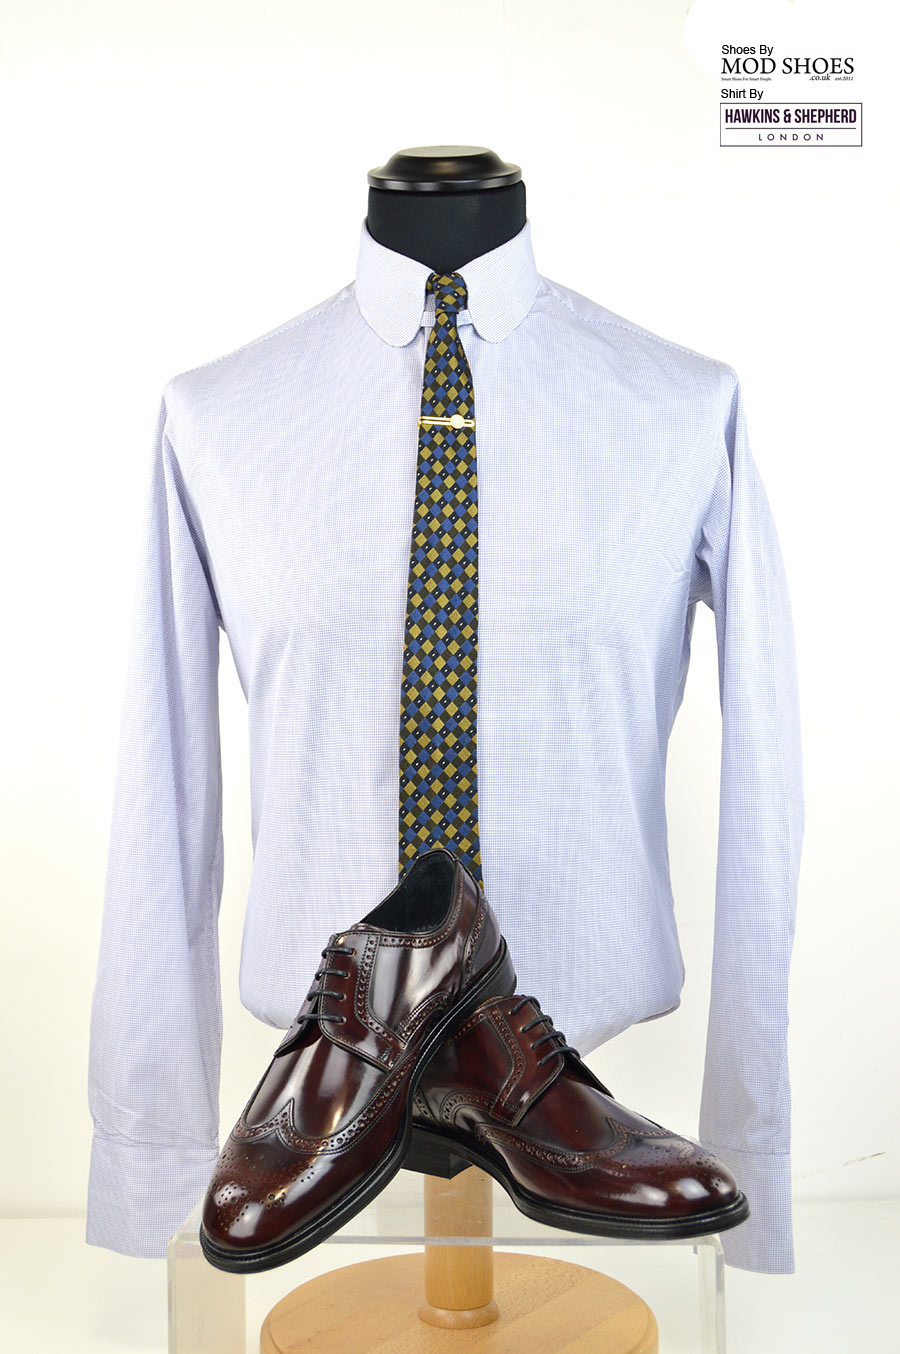 modshoes-mod-ska-brogues-with-shirt-from-PIN-COLLAR-SHIRTS-01